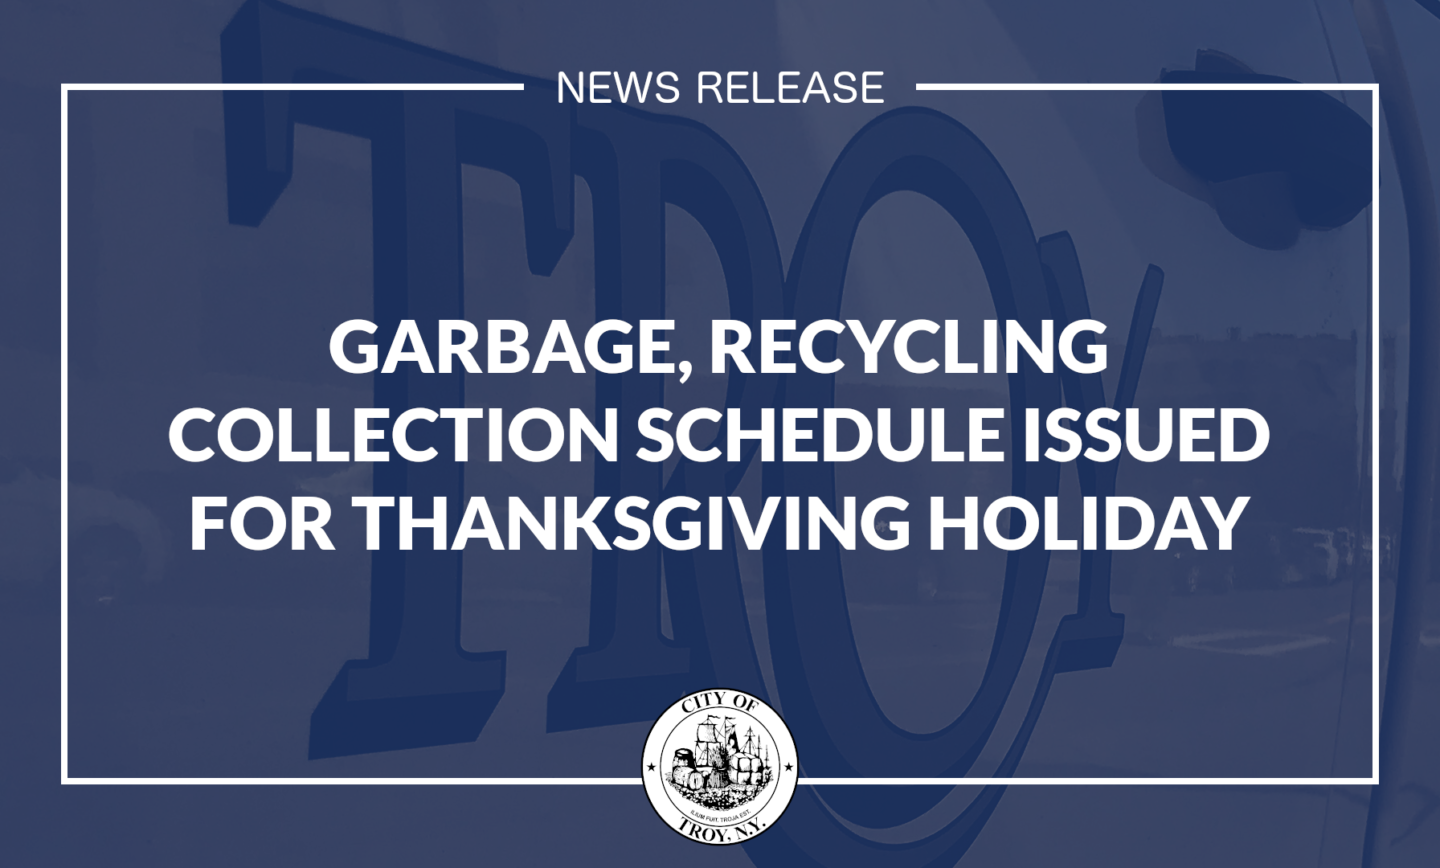 City Officials Issue Updated Garbage, Recycling Collection Schedule for Thanksgiving Holiday